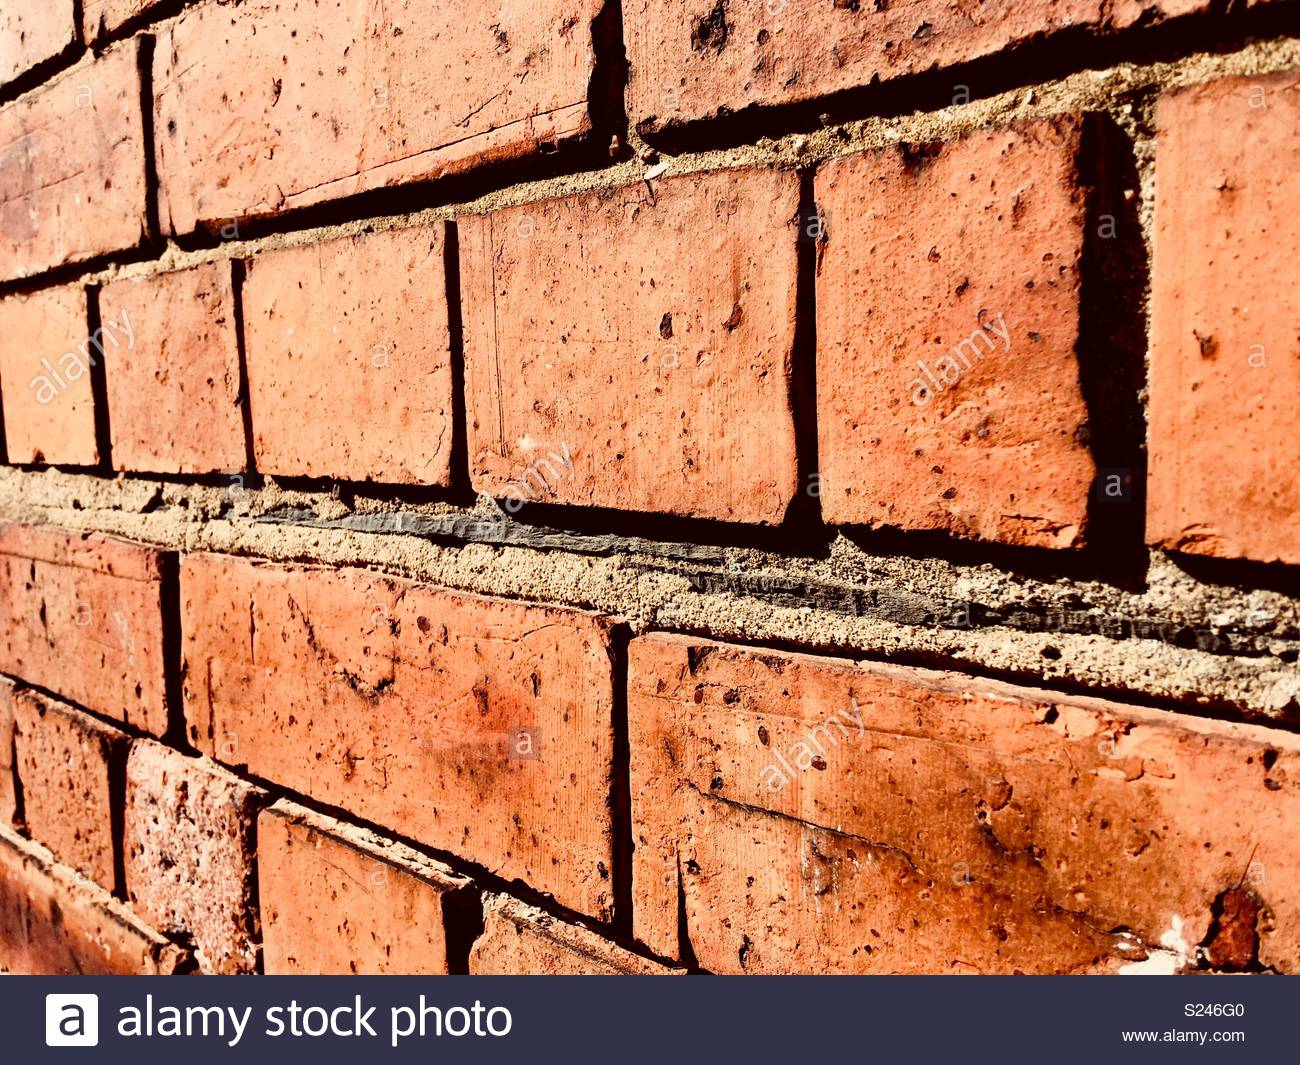 Damp proofing in a brick wall made from slate tiles - Stock Image